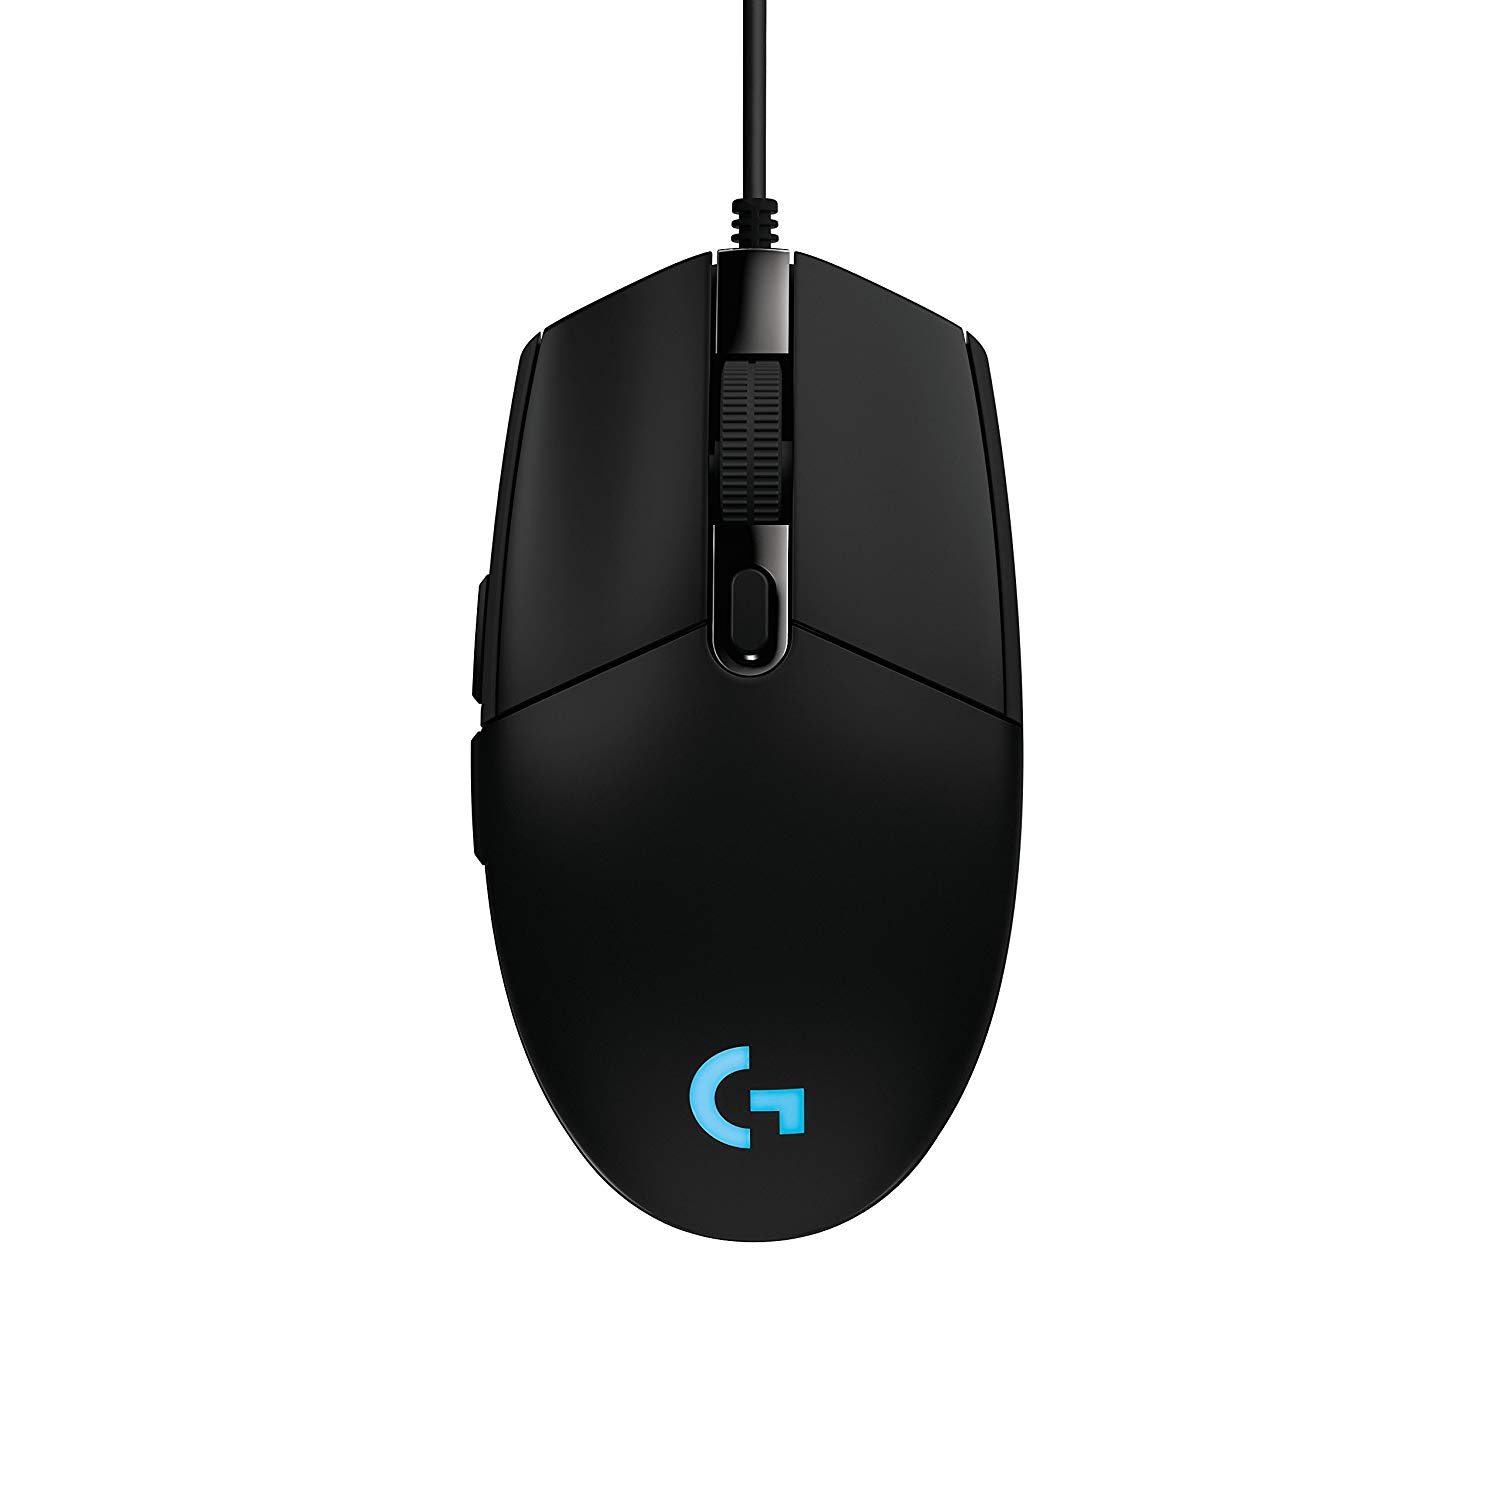 Logitech 910-004842 G203 Gaming Mouse